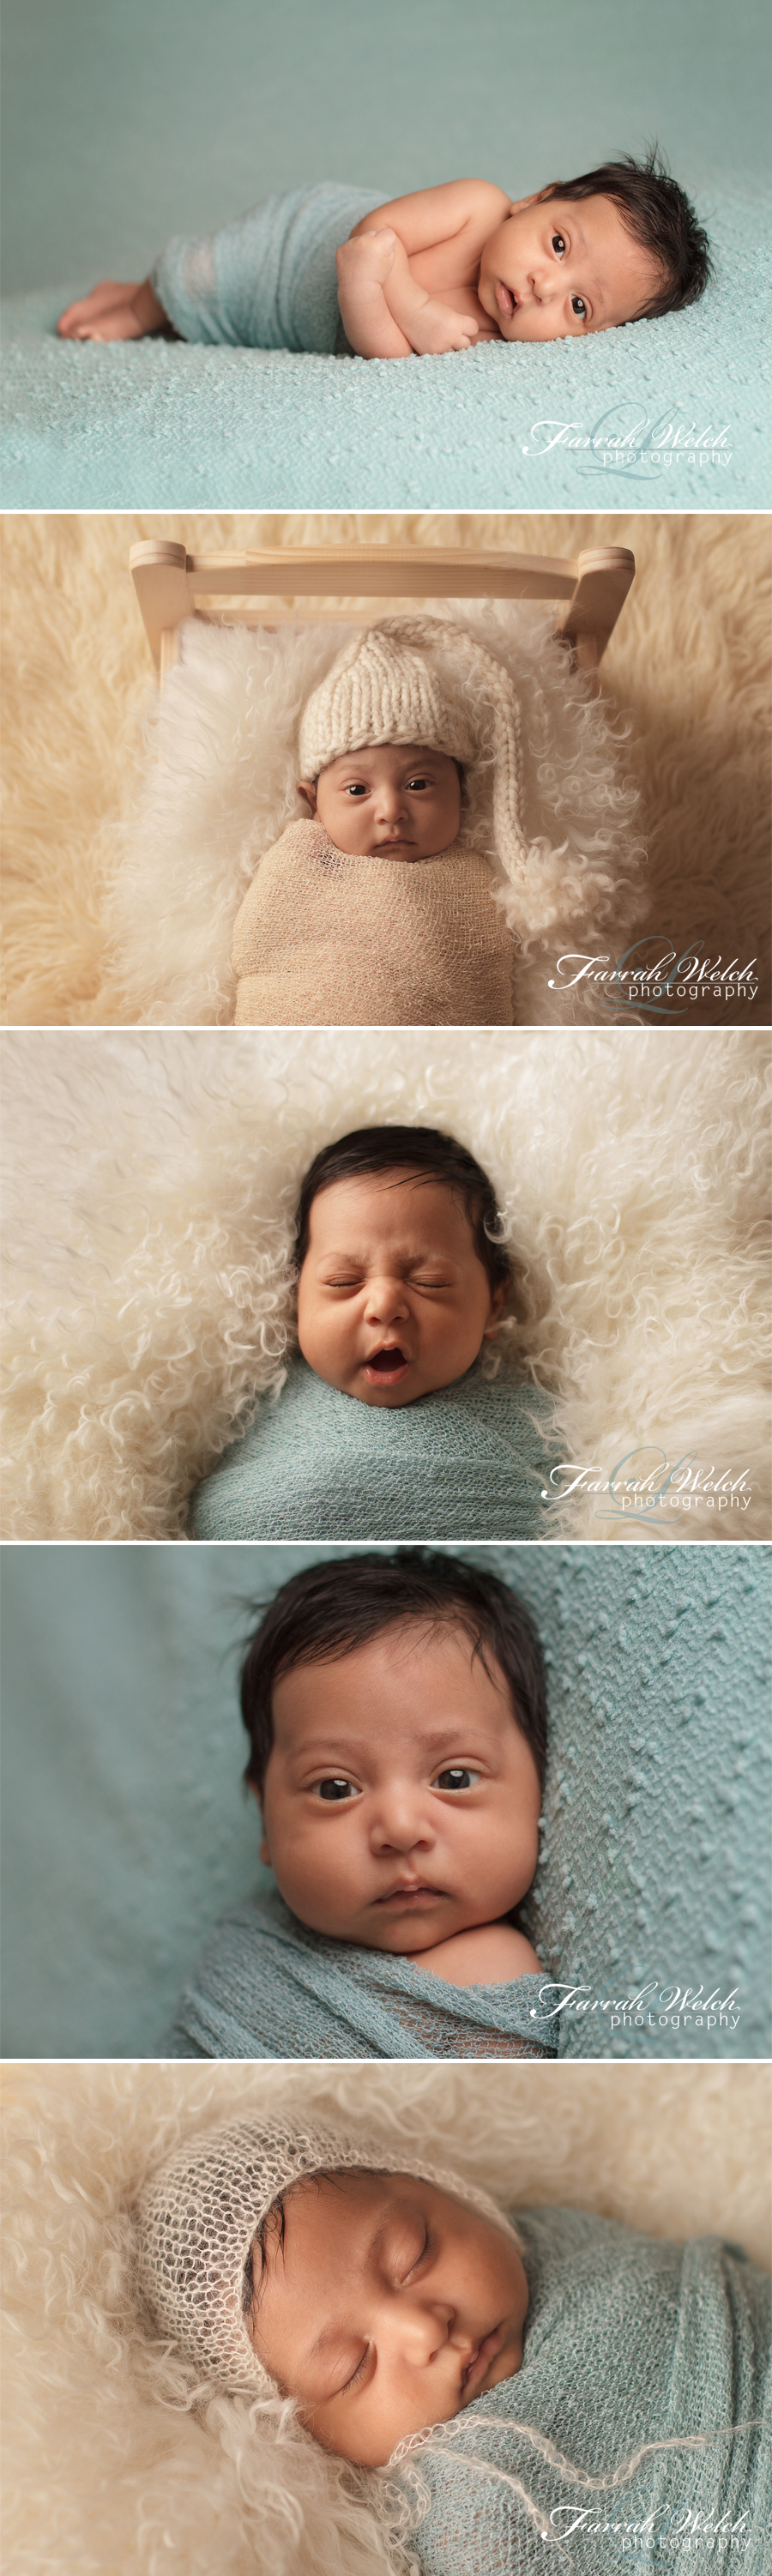 Lucas, 5 weeks old.  Taken by Farrah Welch, Santa Clarita Newborn Photographer